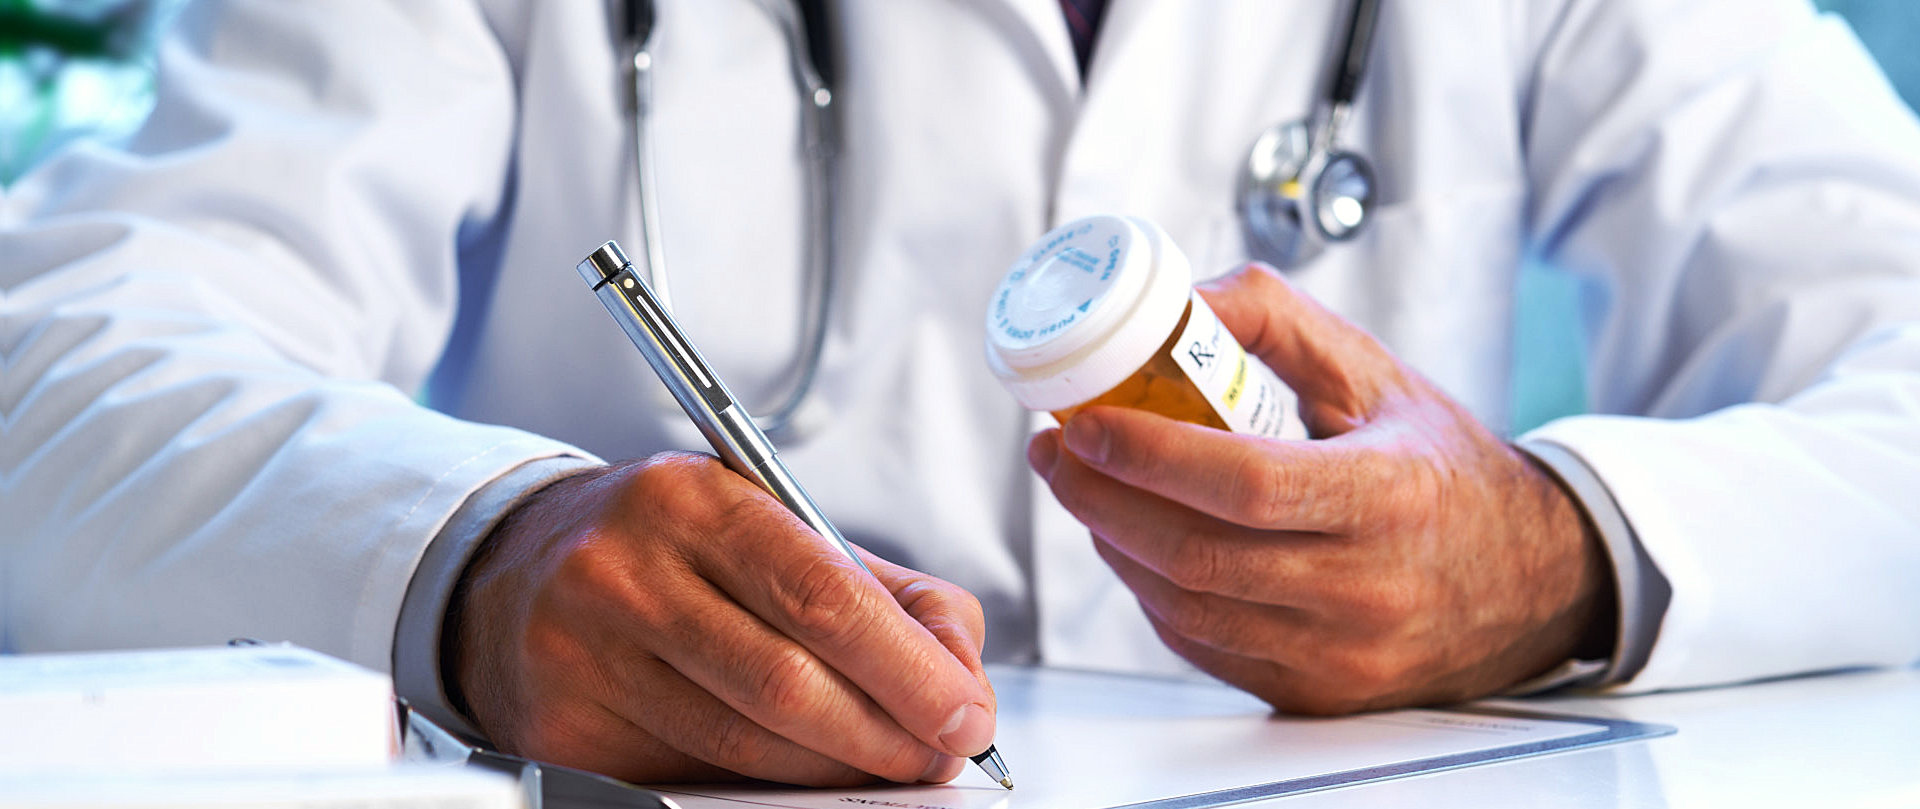 doctor writing prescription while holding bottle of medicine